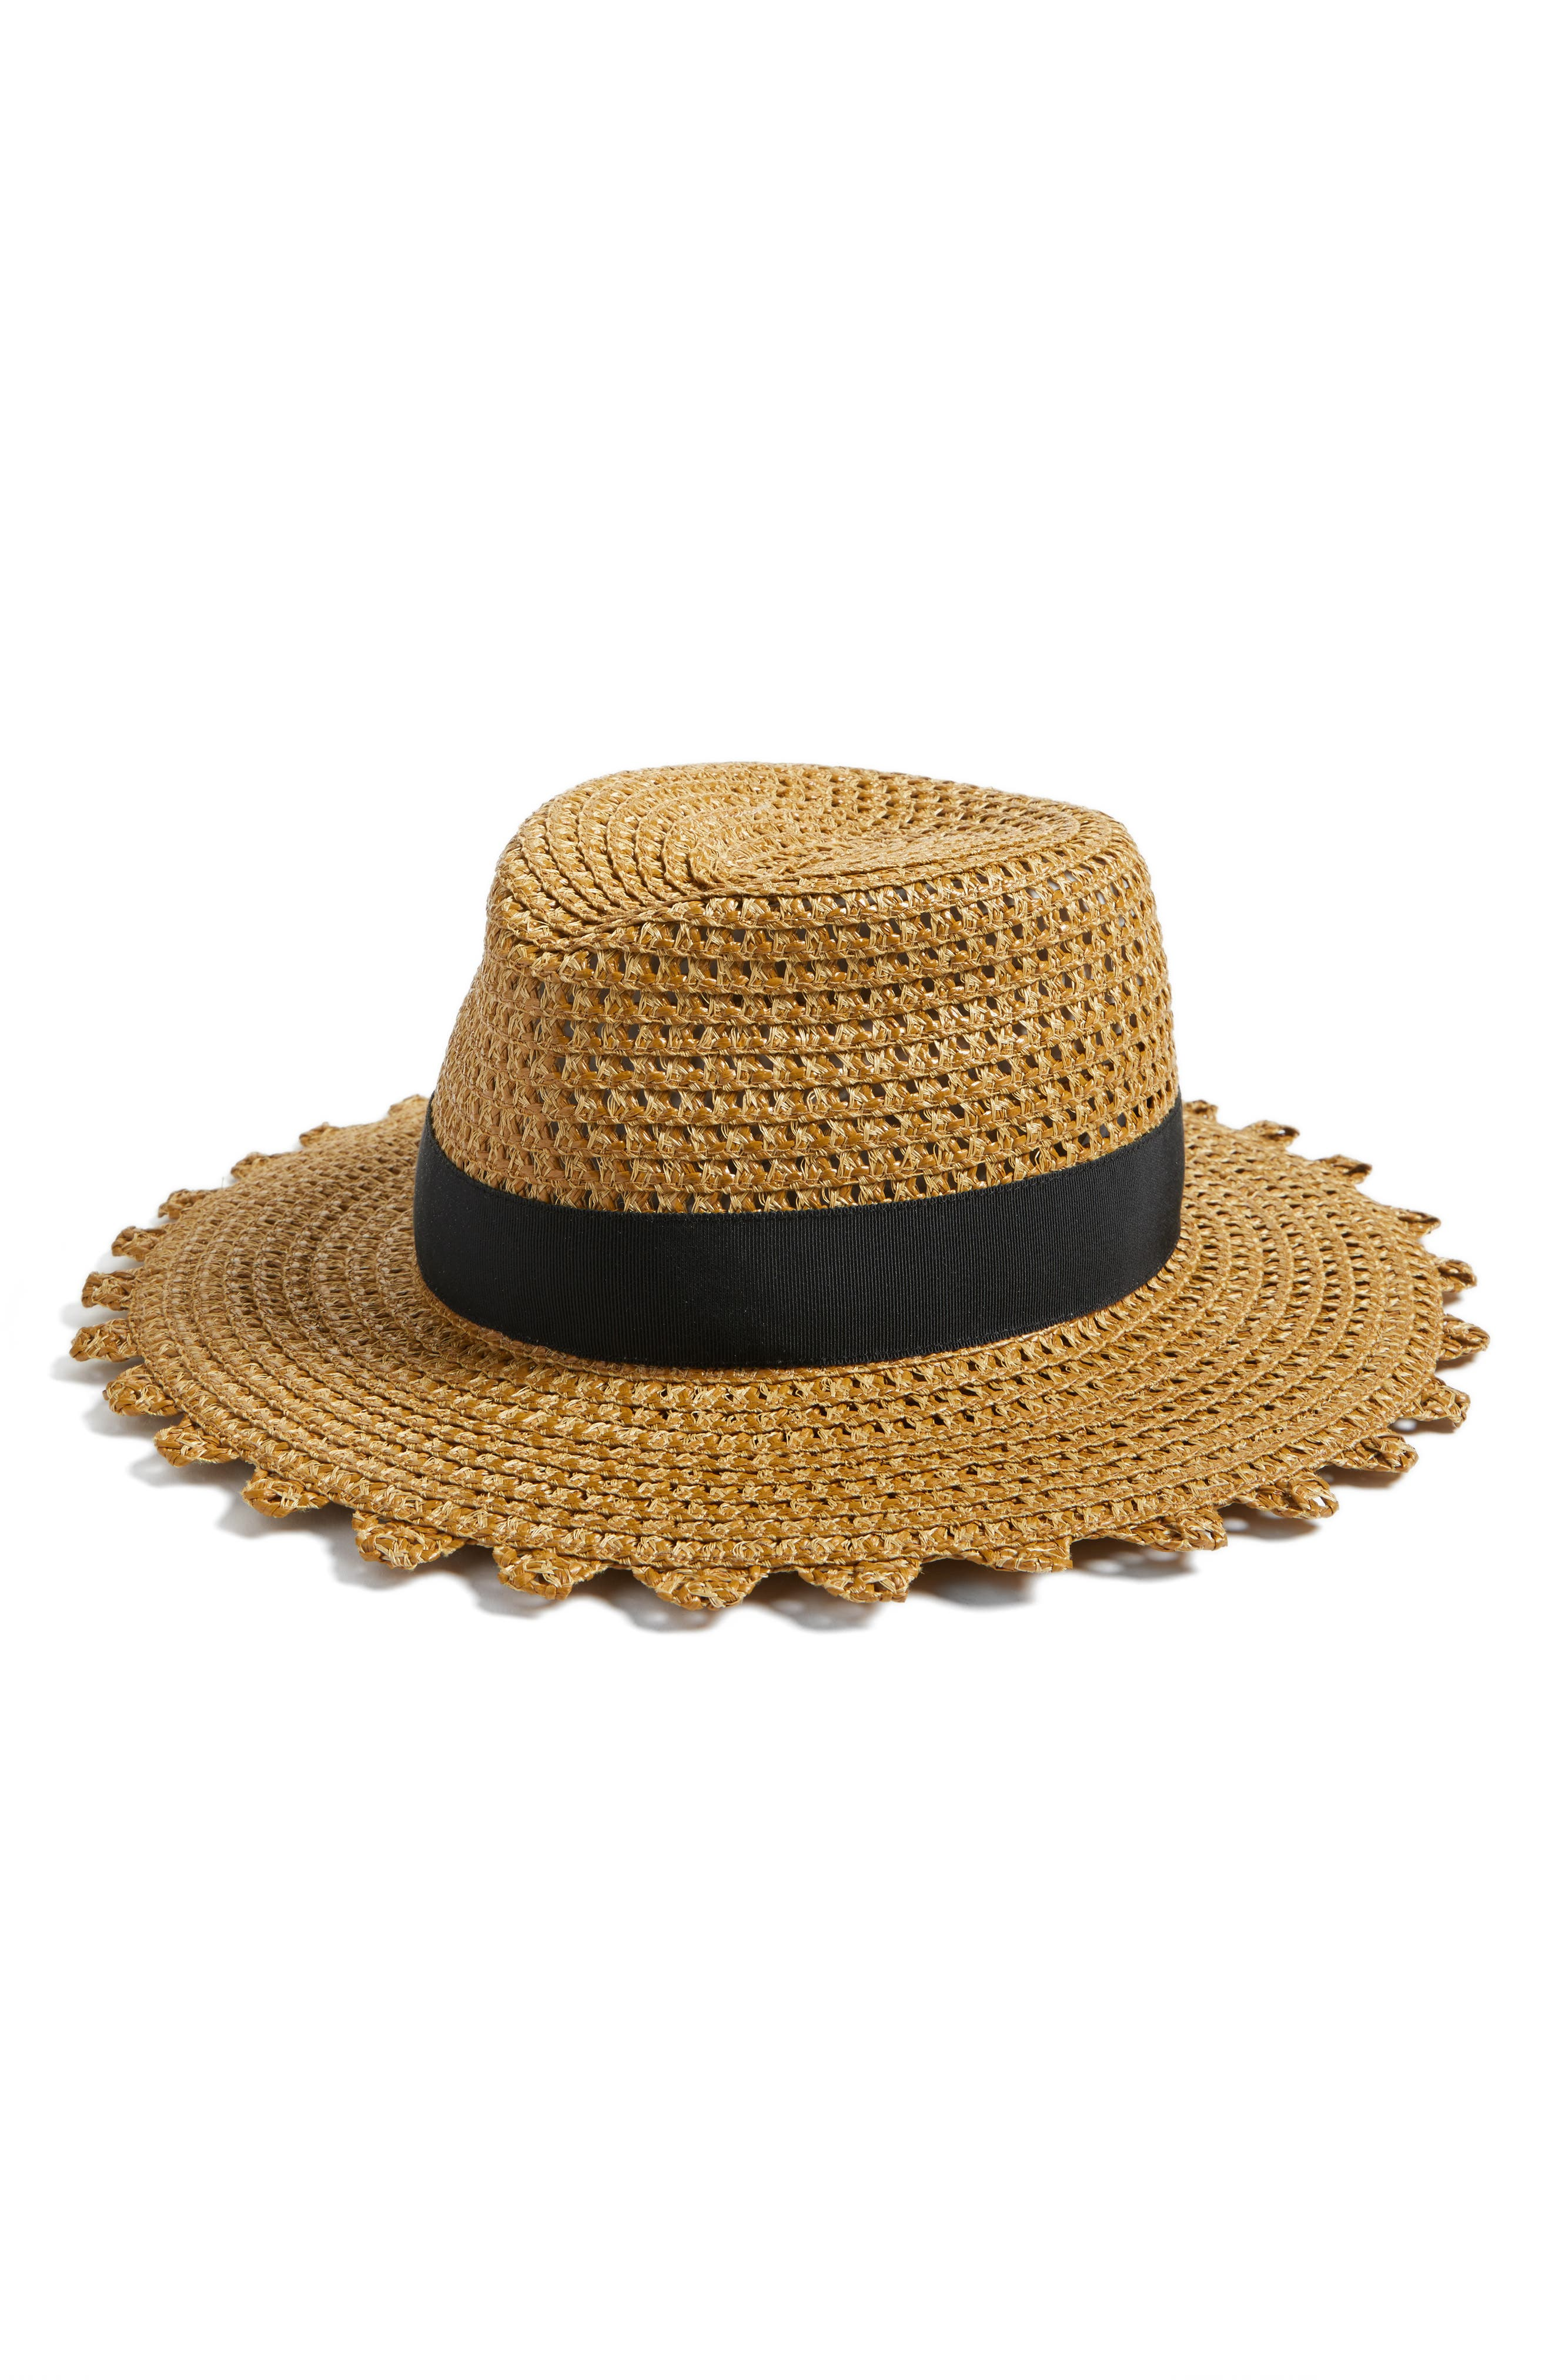 Cannes Squishee<sup>®</sup> Straw Hat,                         Main,                         color, Natural/ Black